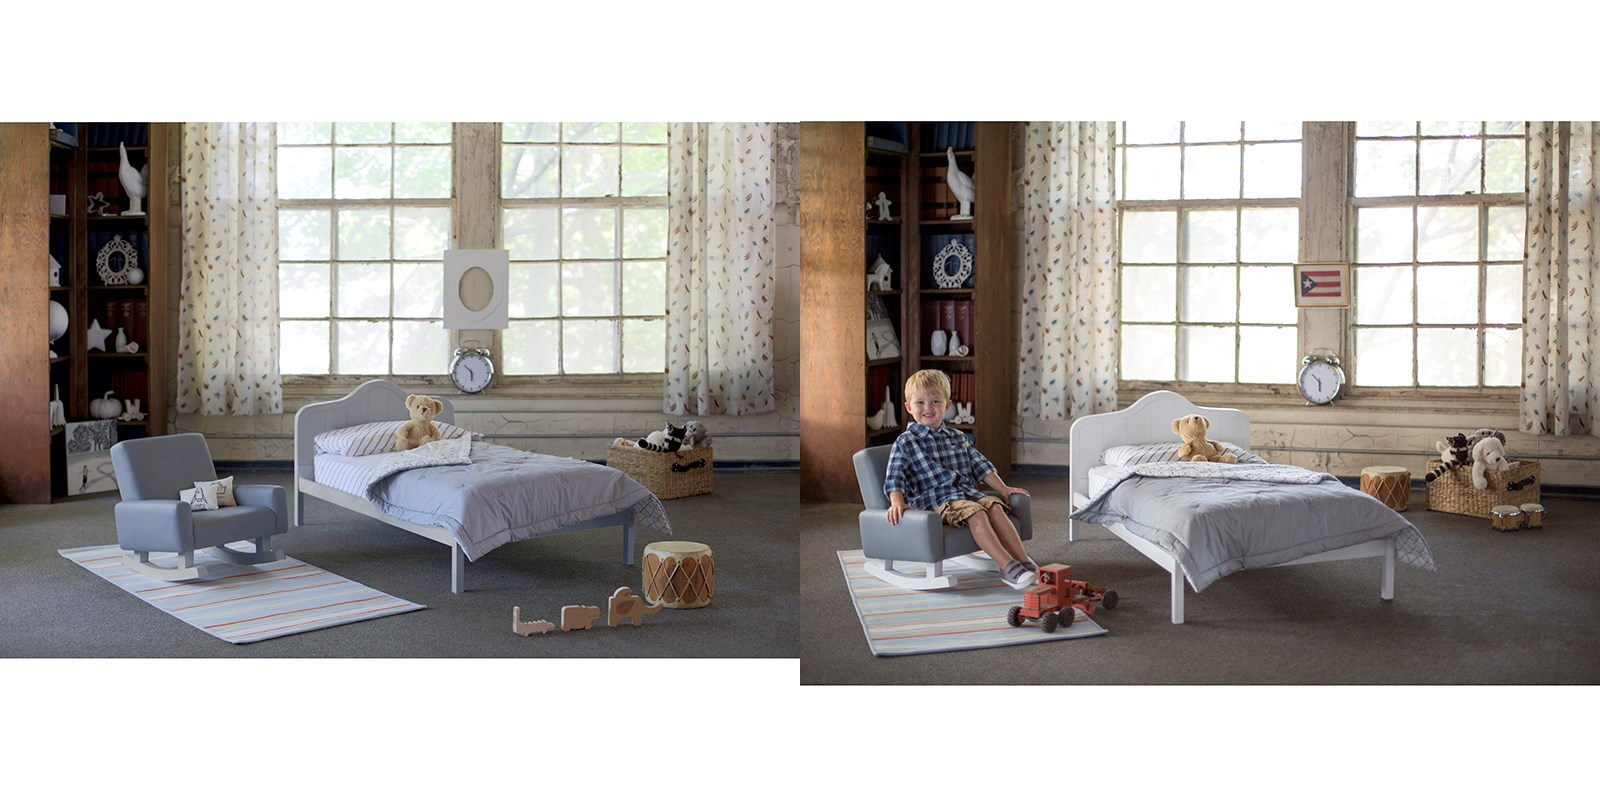 Hot!] Toddler Room in a Box $74.99 (Set includes 3-pc Bedding Set ...